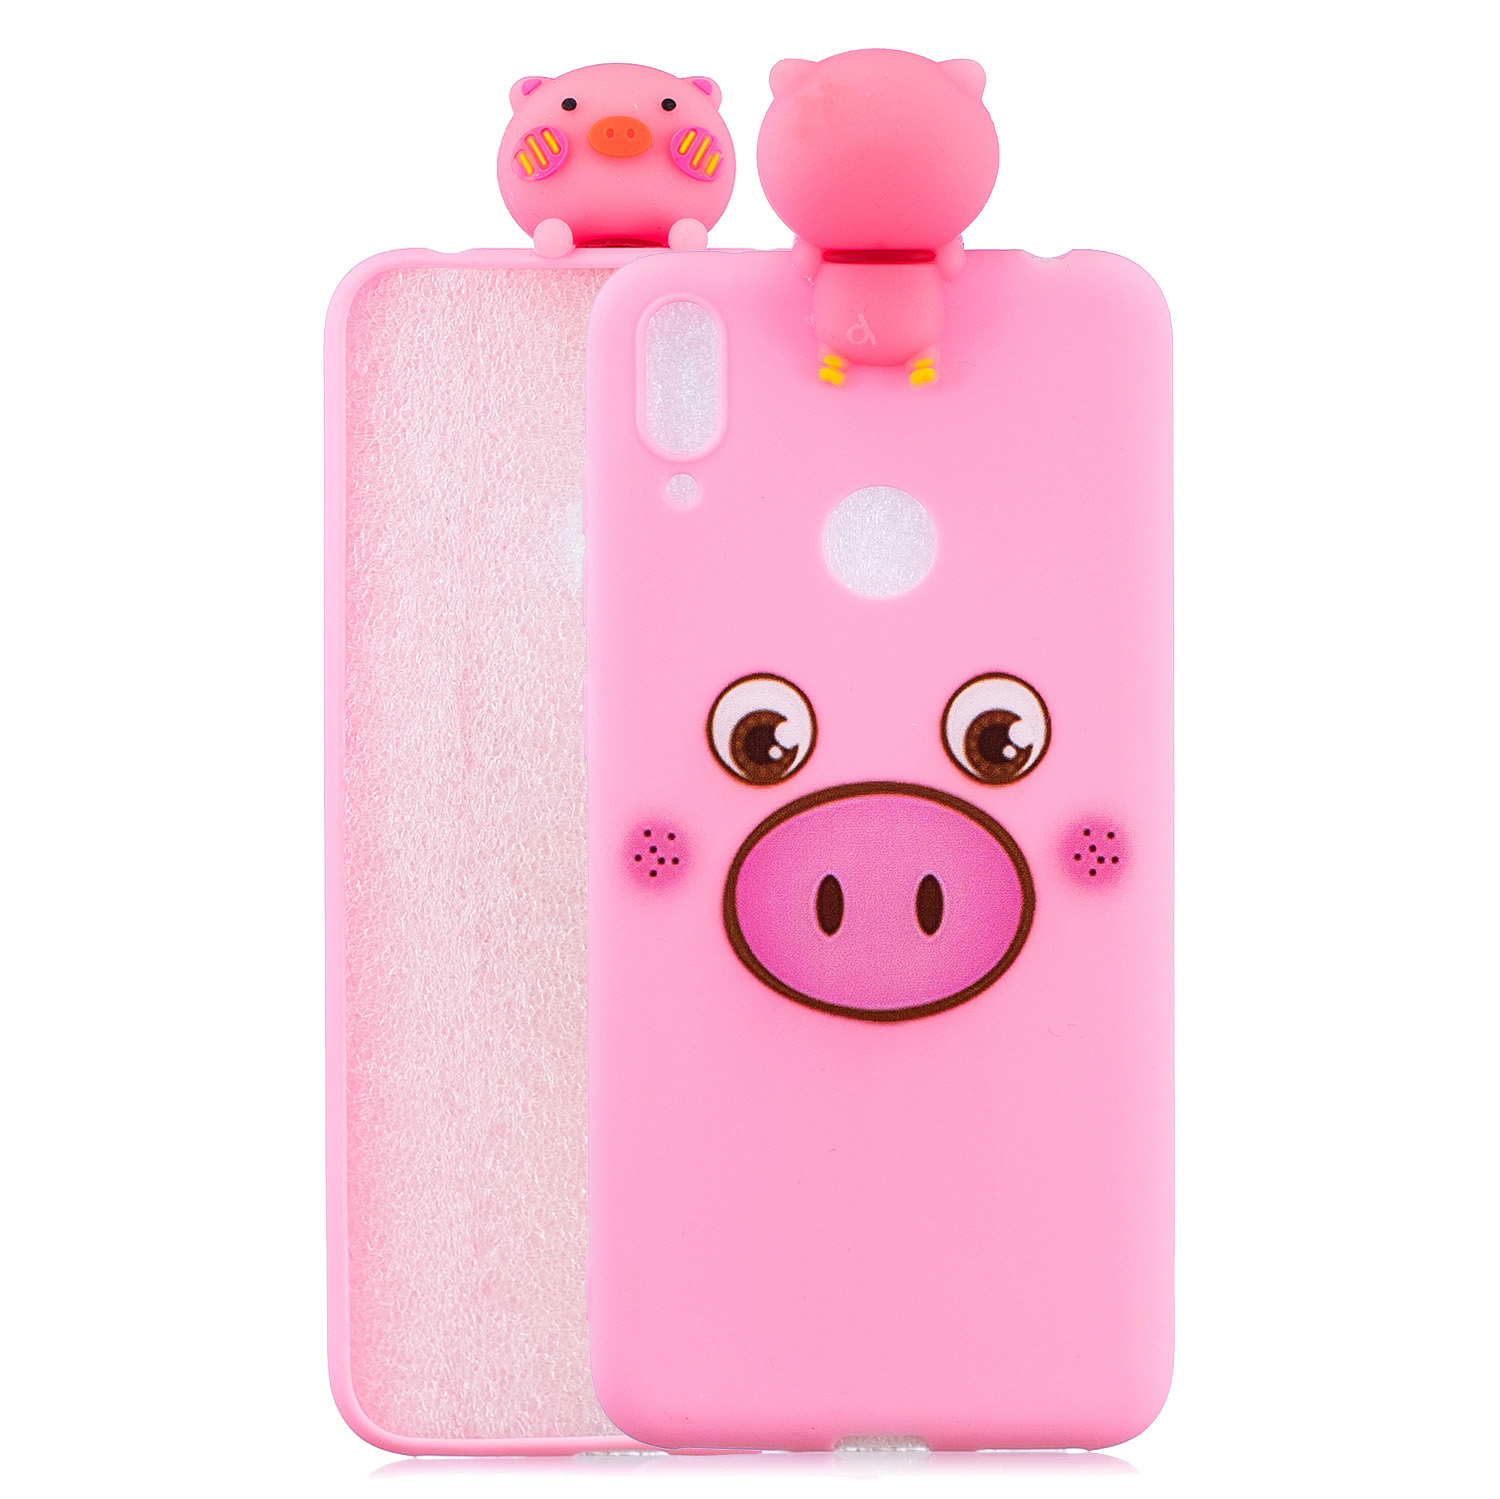 For Huawei Y6 2019 3D Cartoon Lovely Coloured Painted Soft TPU Back Cover Non-slip Shockproof Full Protective Case Small pink pig